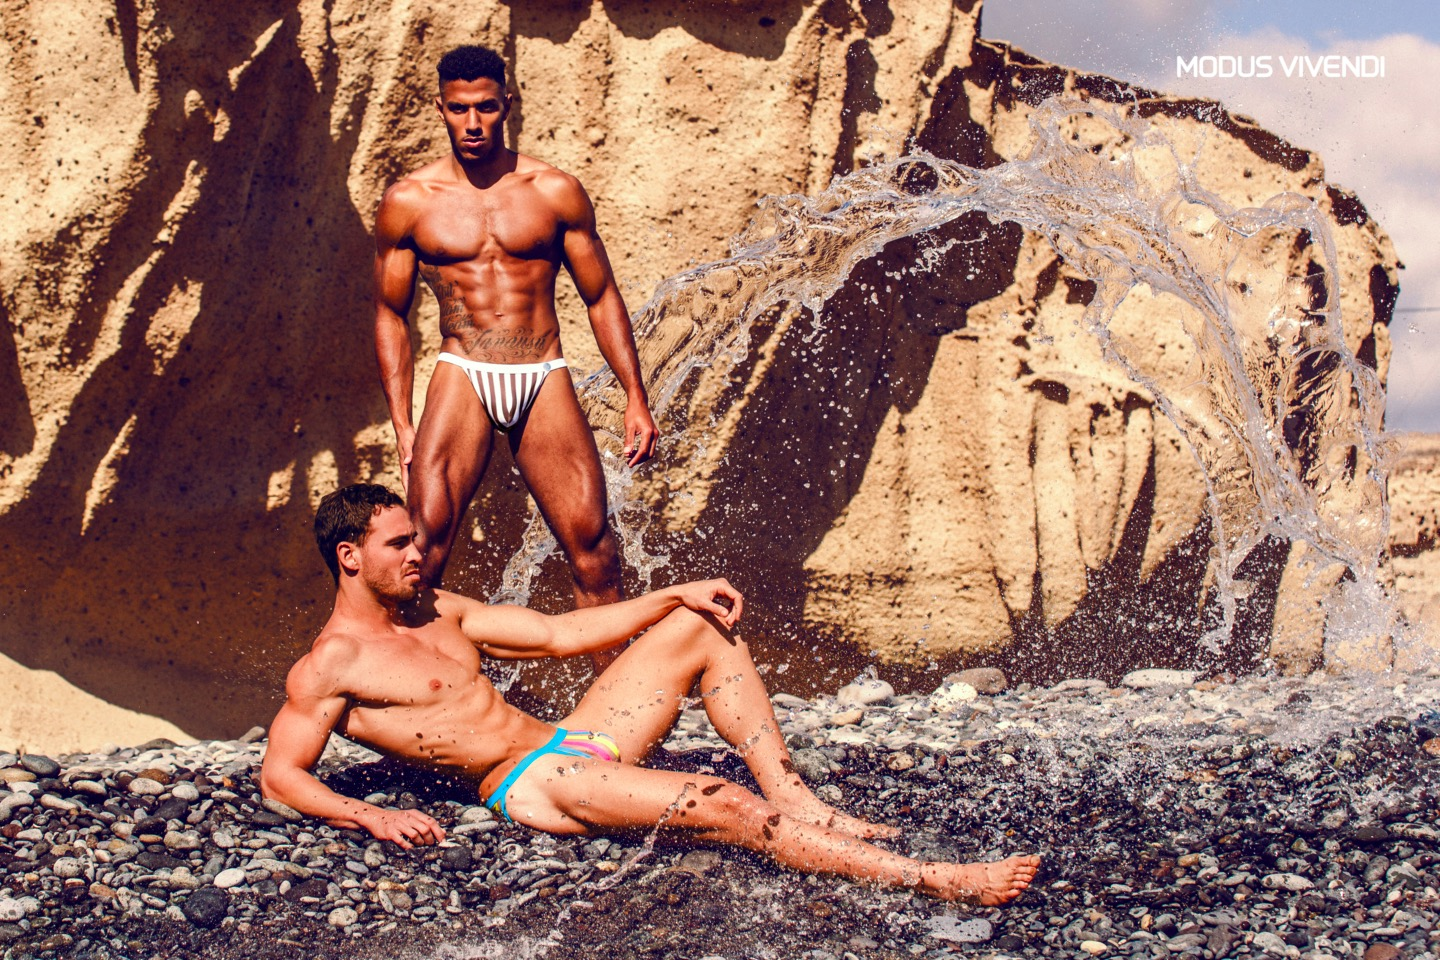 Modus Vivendi Launches the Sun Tanning Line